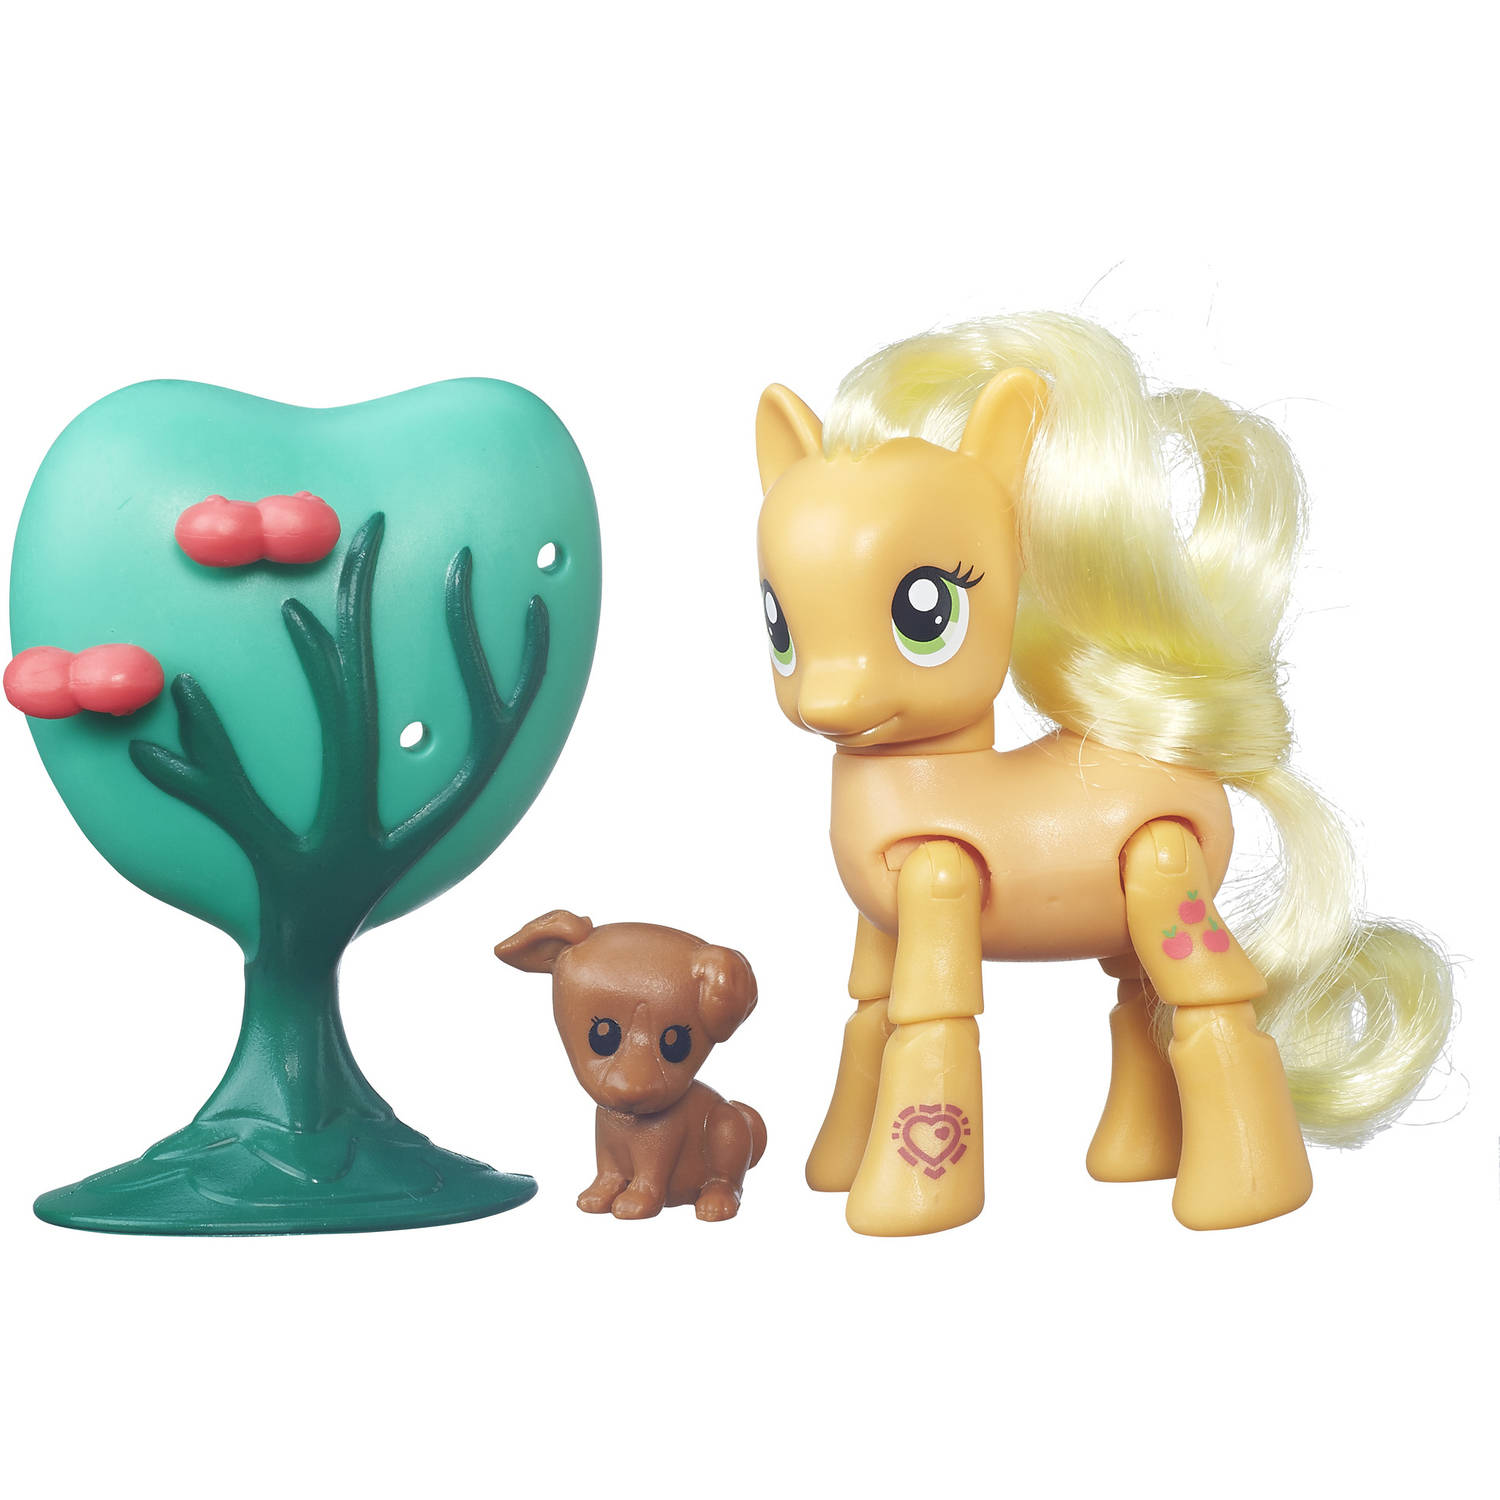 My Little Pony Friendship Is Magic Applejack Applebucking Poseable Pony by Hasbro